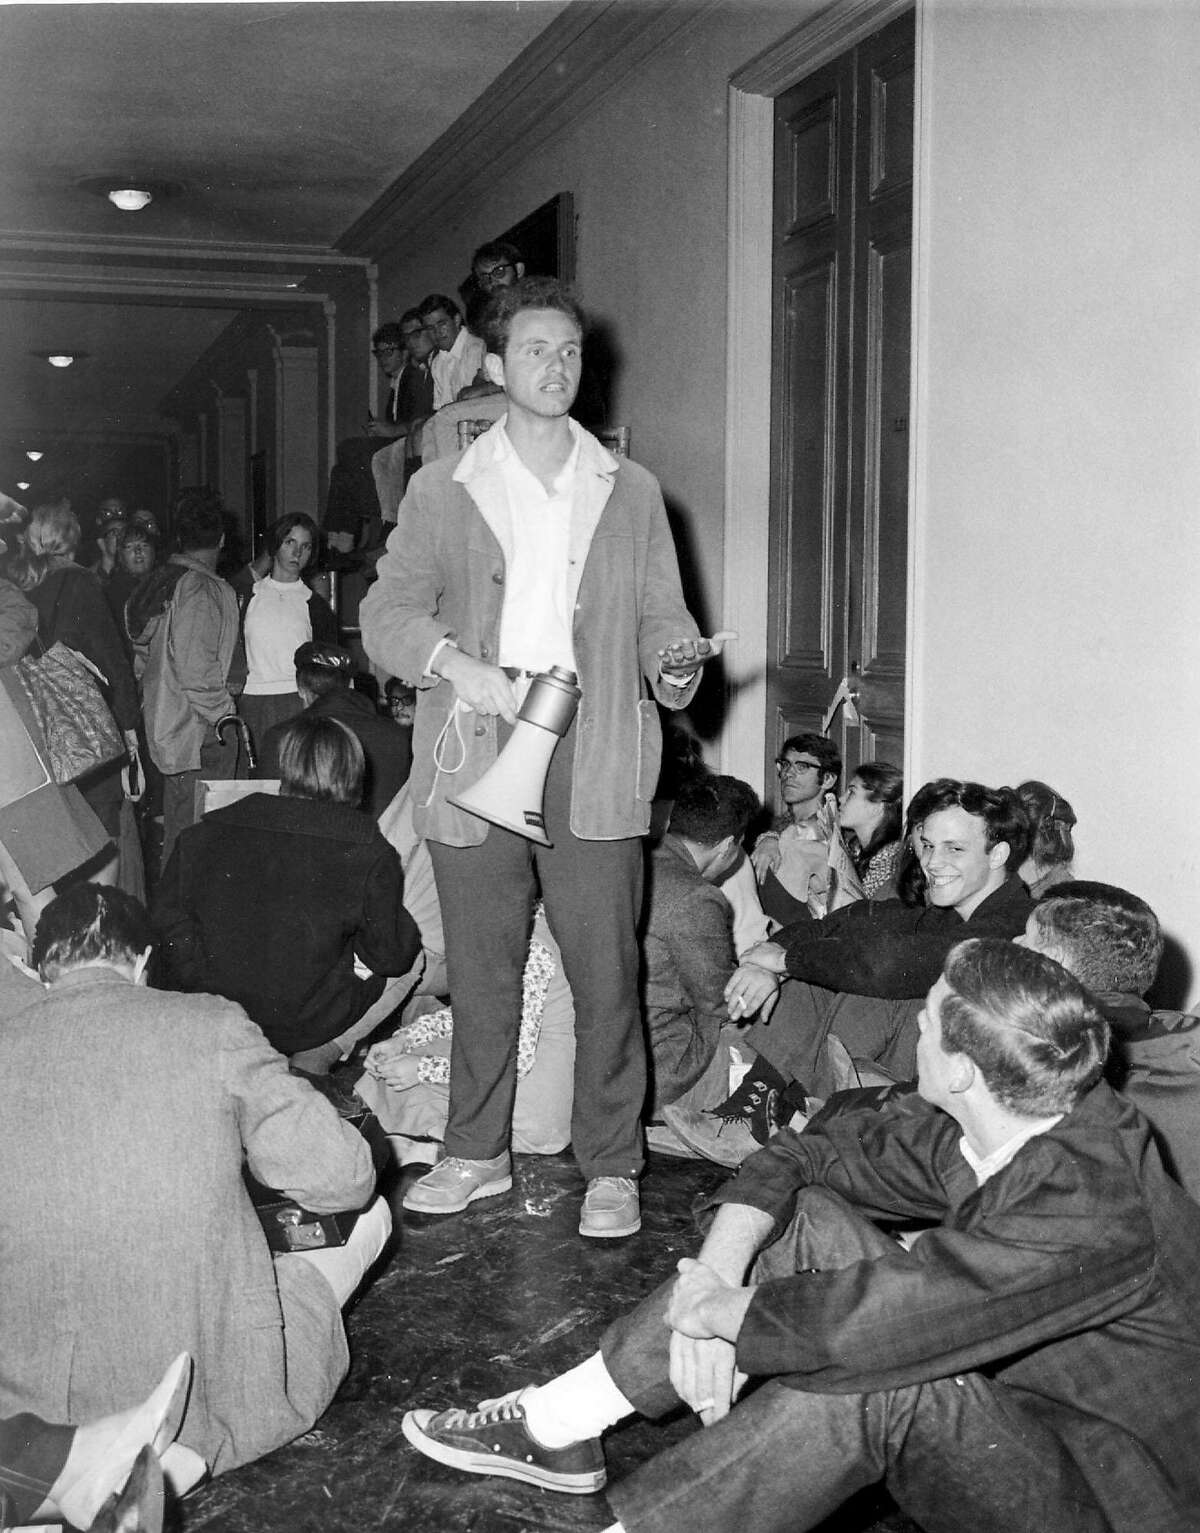 File - (AP) In the Beginning. In 1964, the freshman class to the University of California, Berkeley, found themselves involved with the Free Speech Movement, a protest against the campus administration and policies. Led by Mario Savio, with bullhorn, some 700 demonstrators held a sit-in at Sproul Hall in open defiance of administration orders. (AP-Photo) 24.5.1968